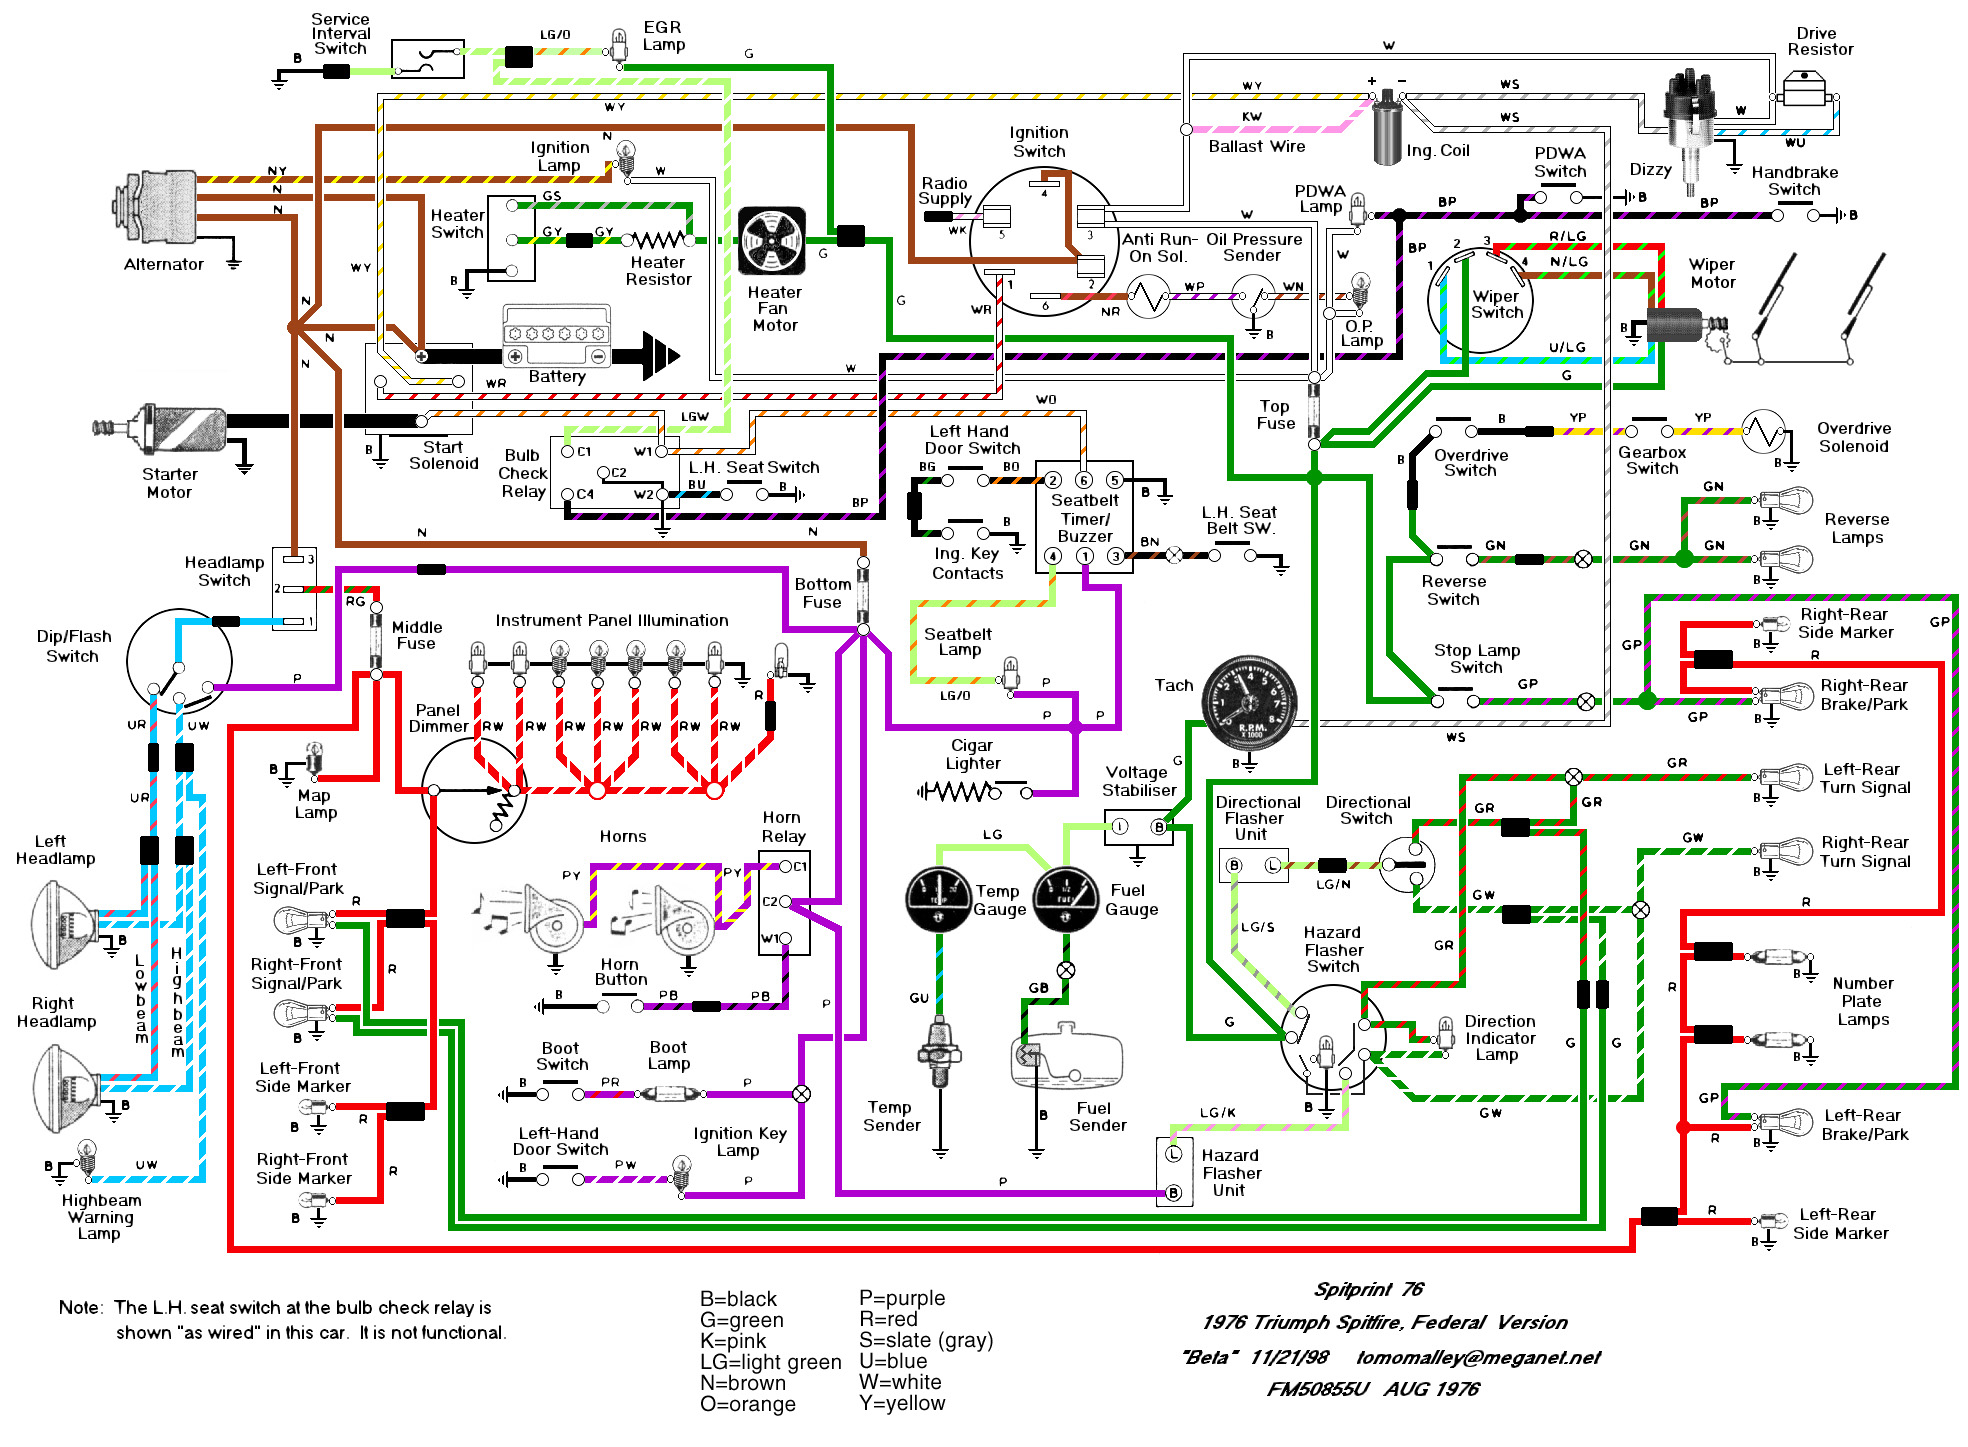 Ford Courier Wiring Diagram Pdf Wiring Diagram Schematics Ford Courier Stereo Wiring Diagram Ford Courier Wiring